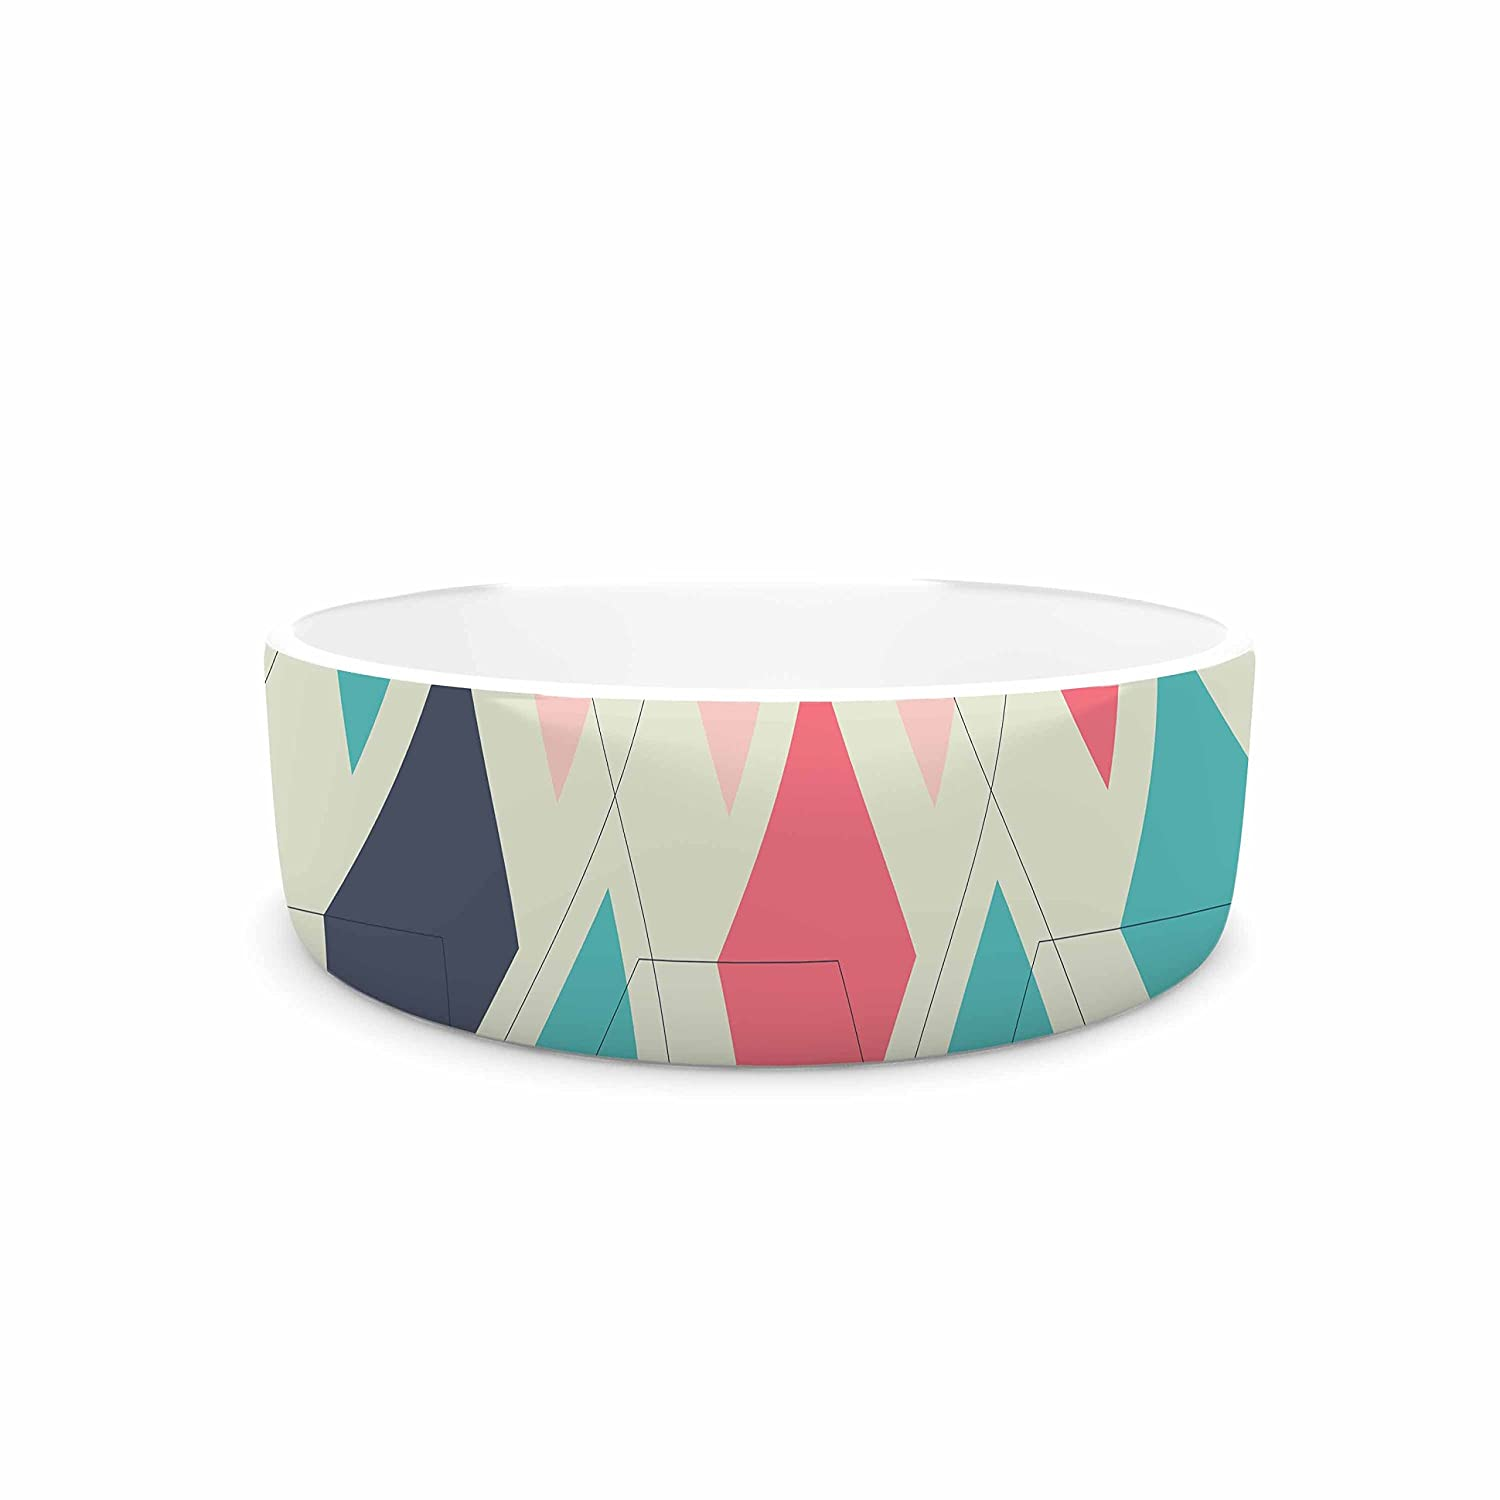 KESS InHouse Neelam Kaur Modern Retro Pink bluee Digital Pet Bowl, 4.75  Diameter